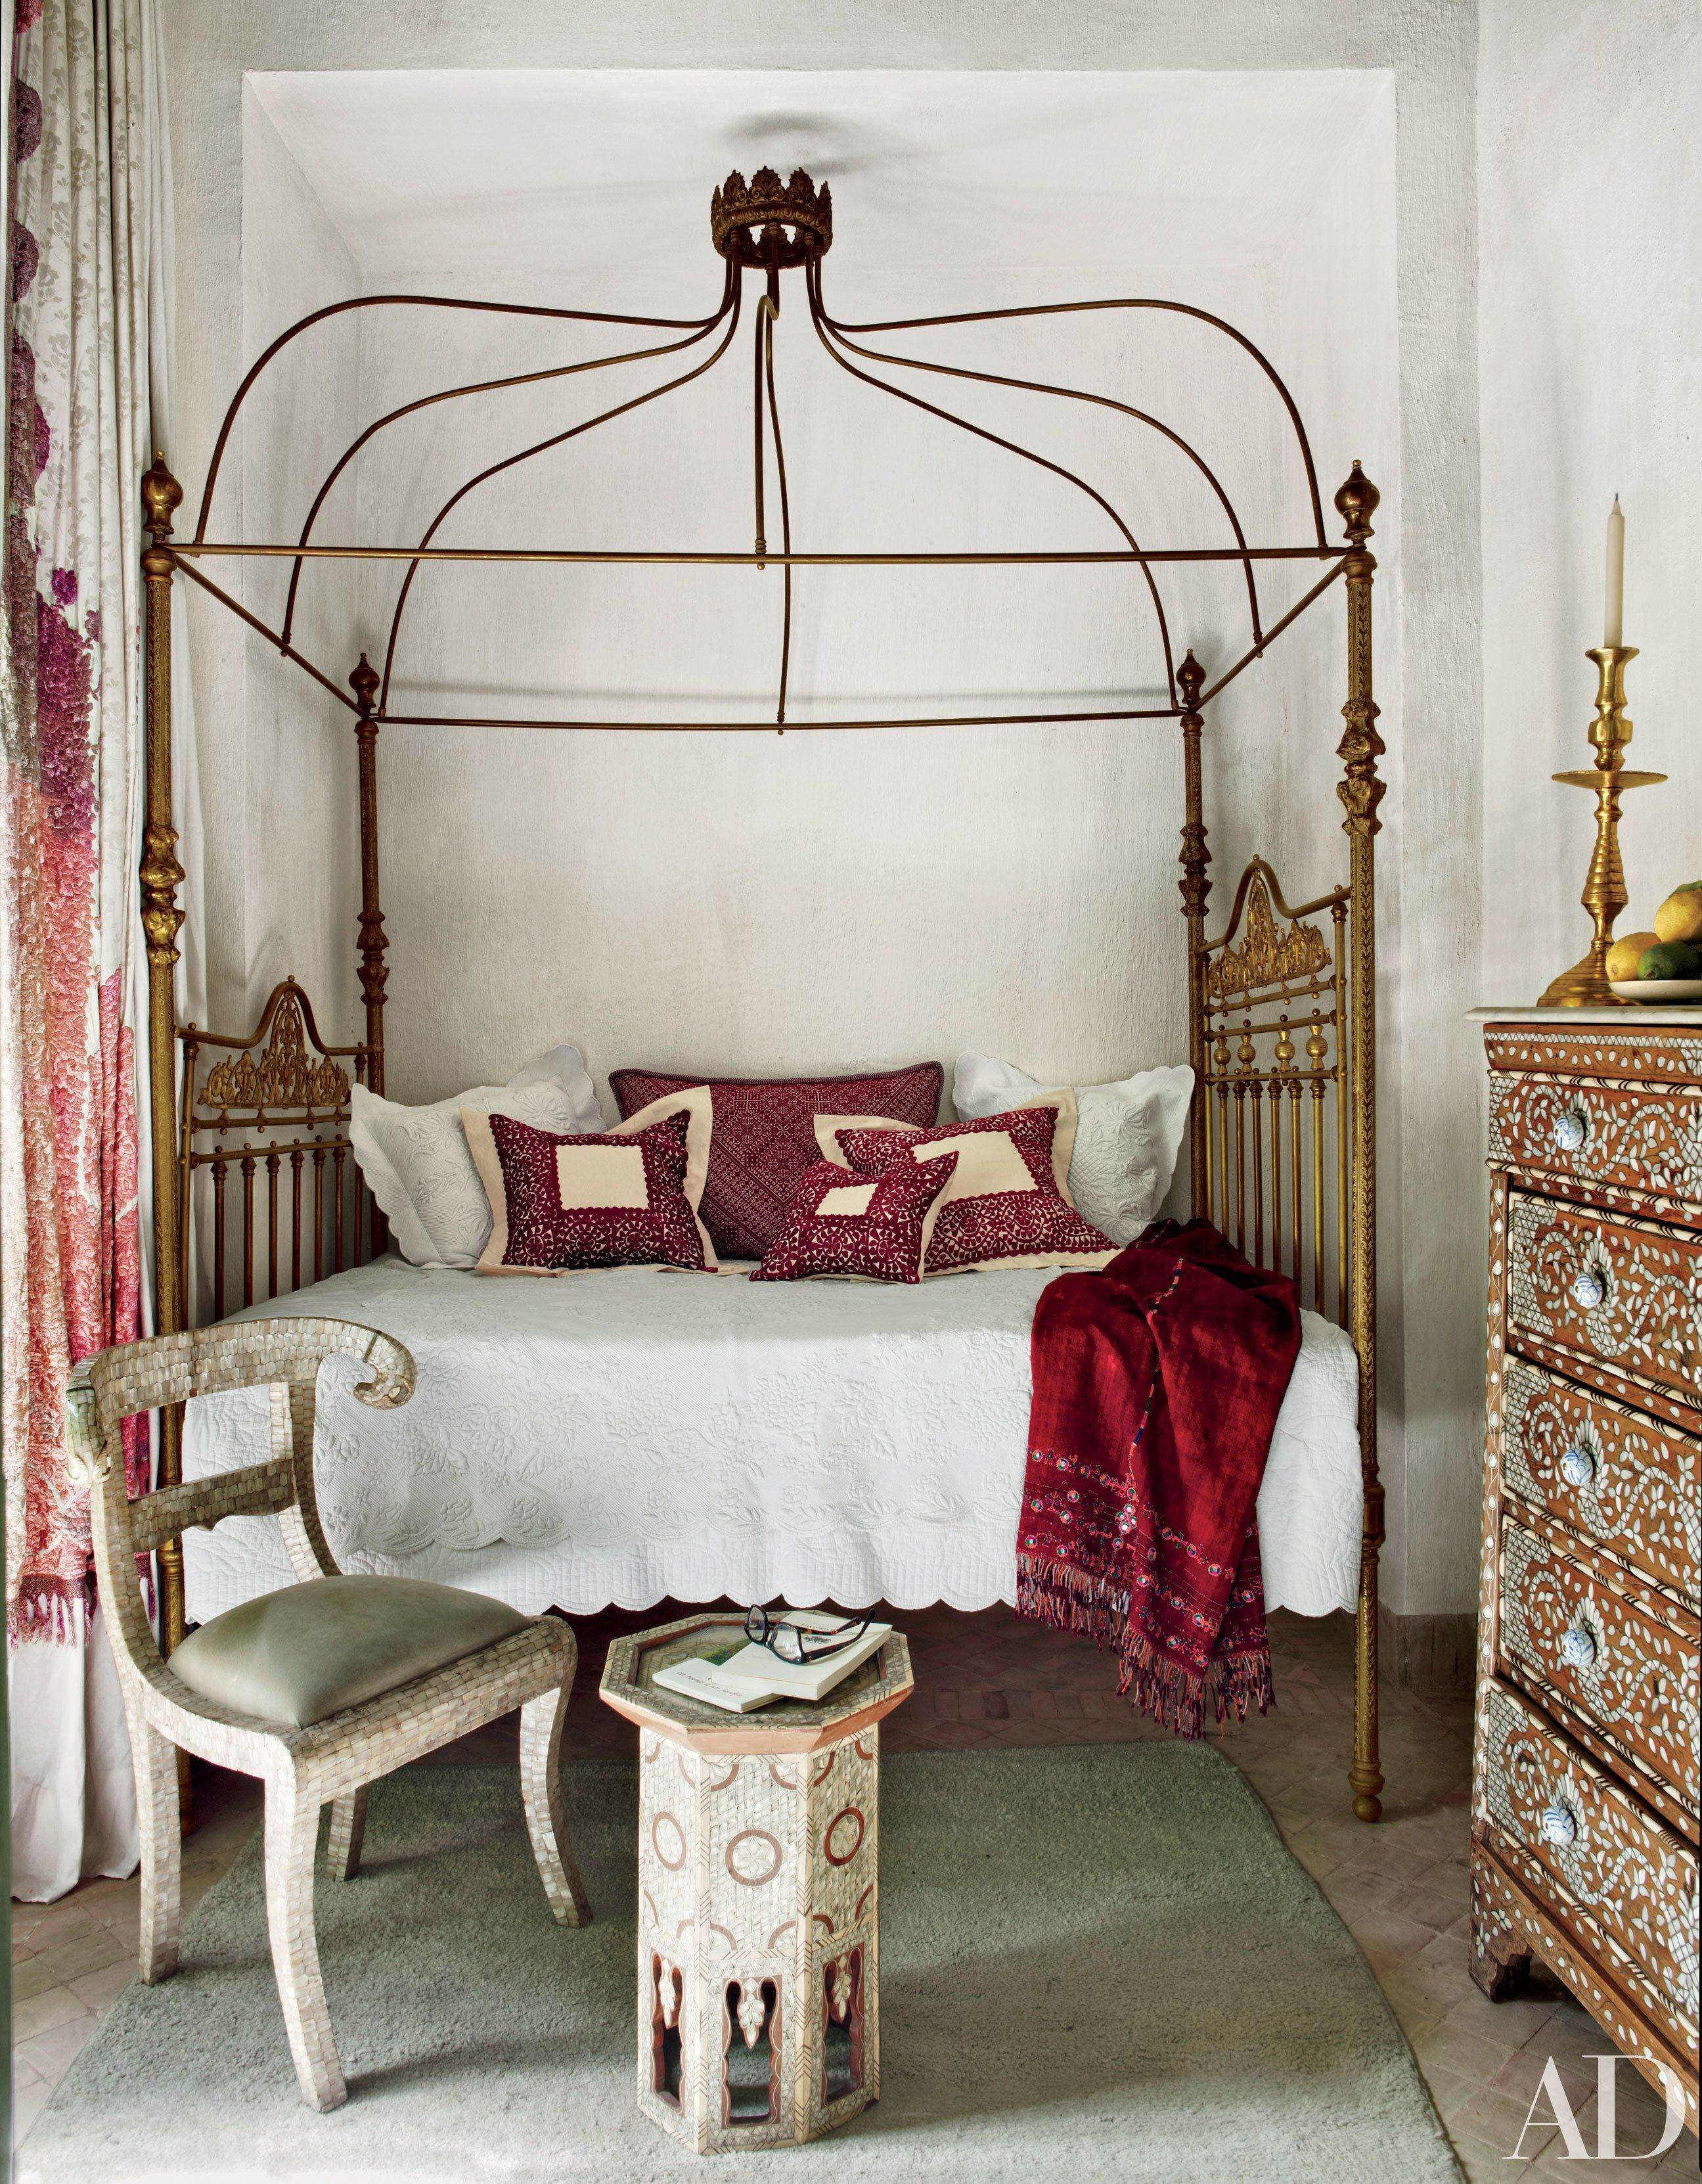 Captivating Decorating Ideas: Four Poster Beds | Architectural Digest